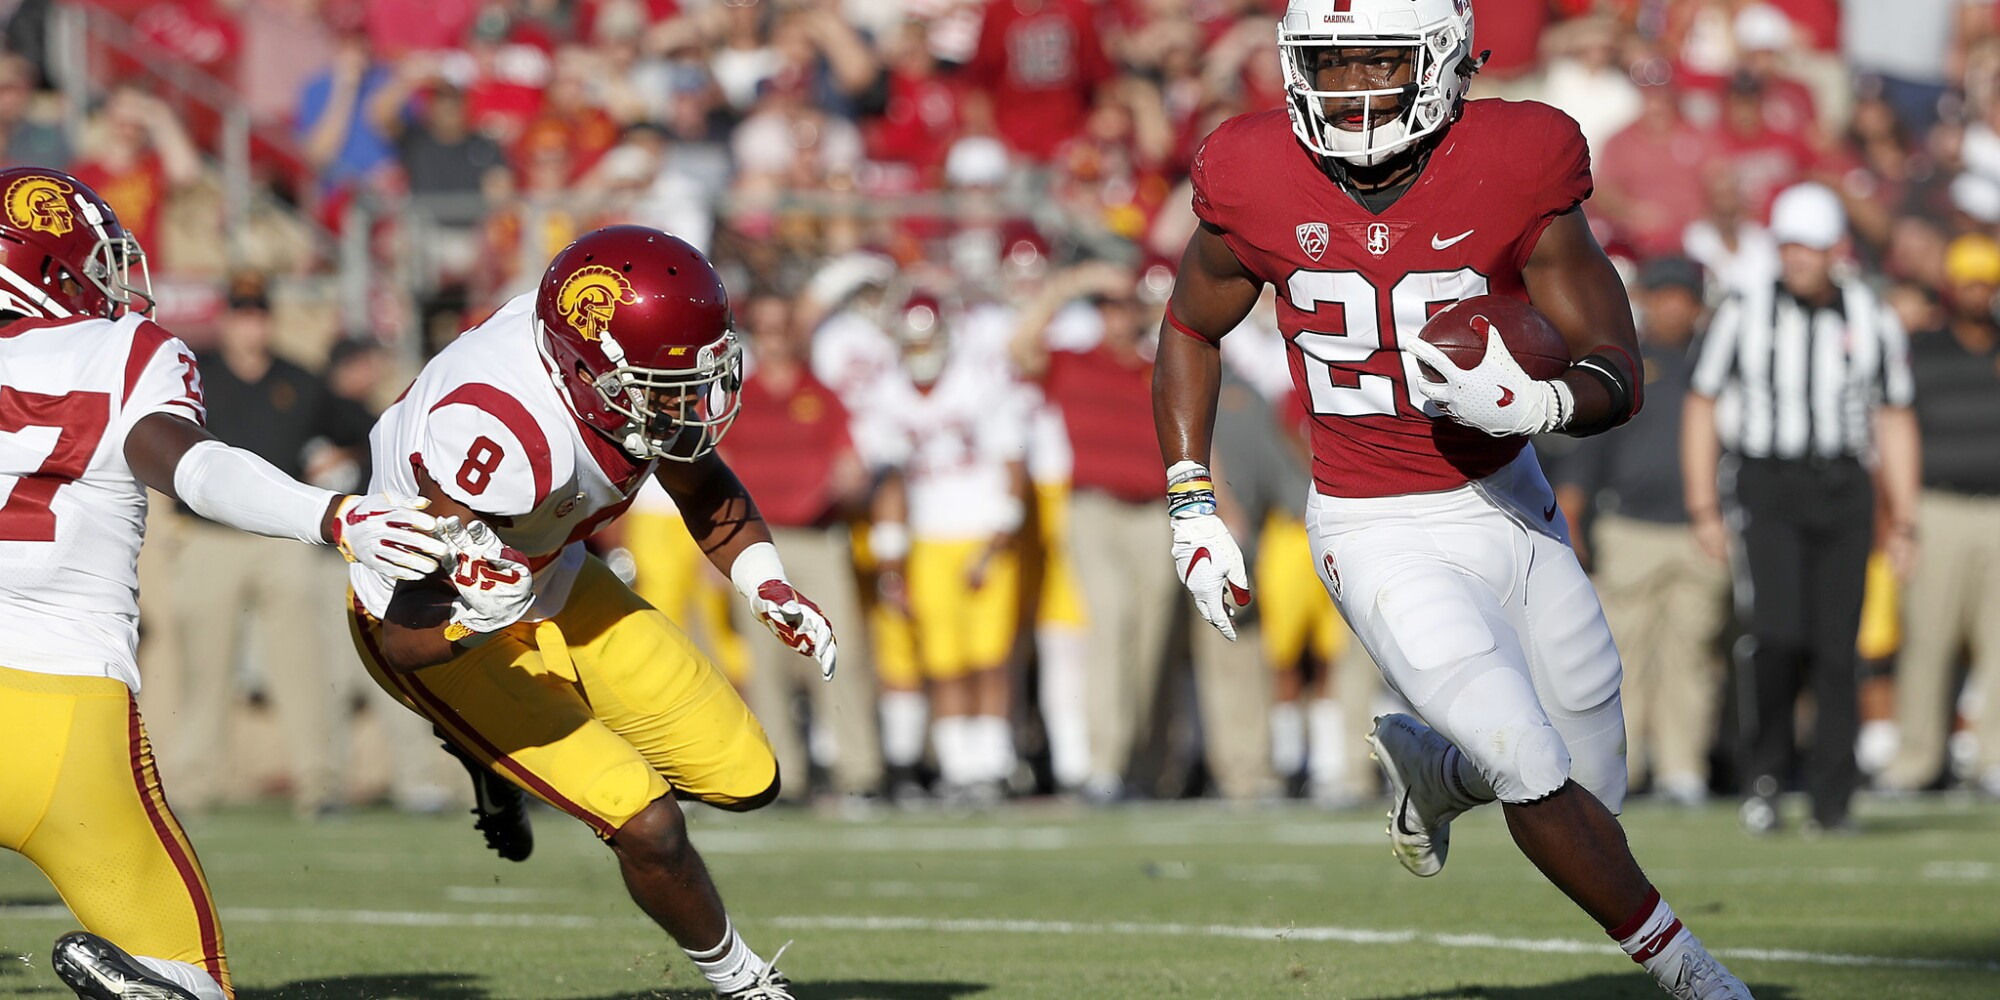 USC vs. Stanford: Live updates